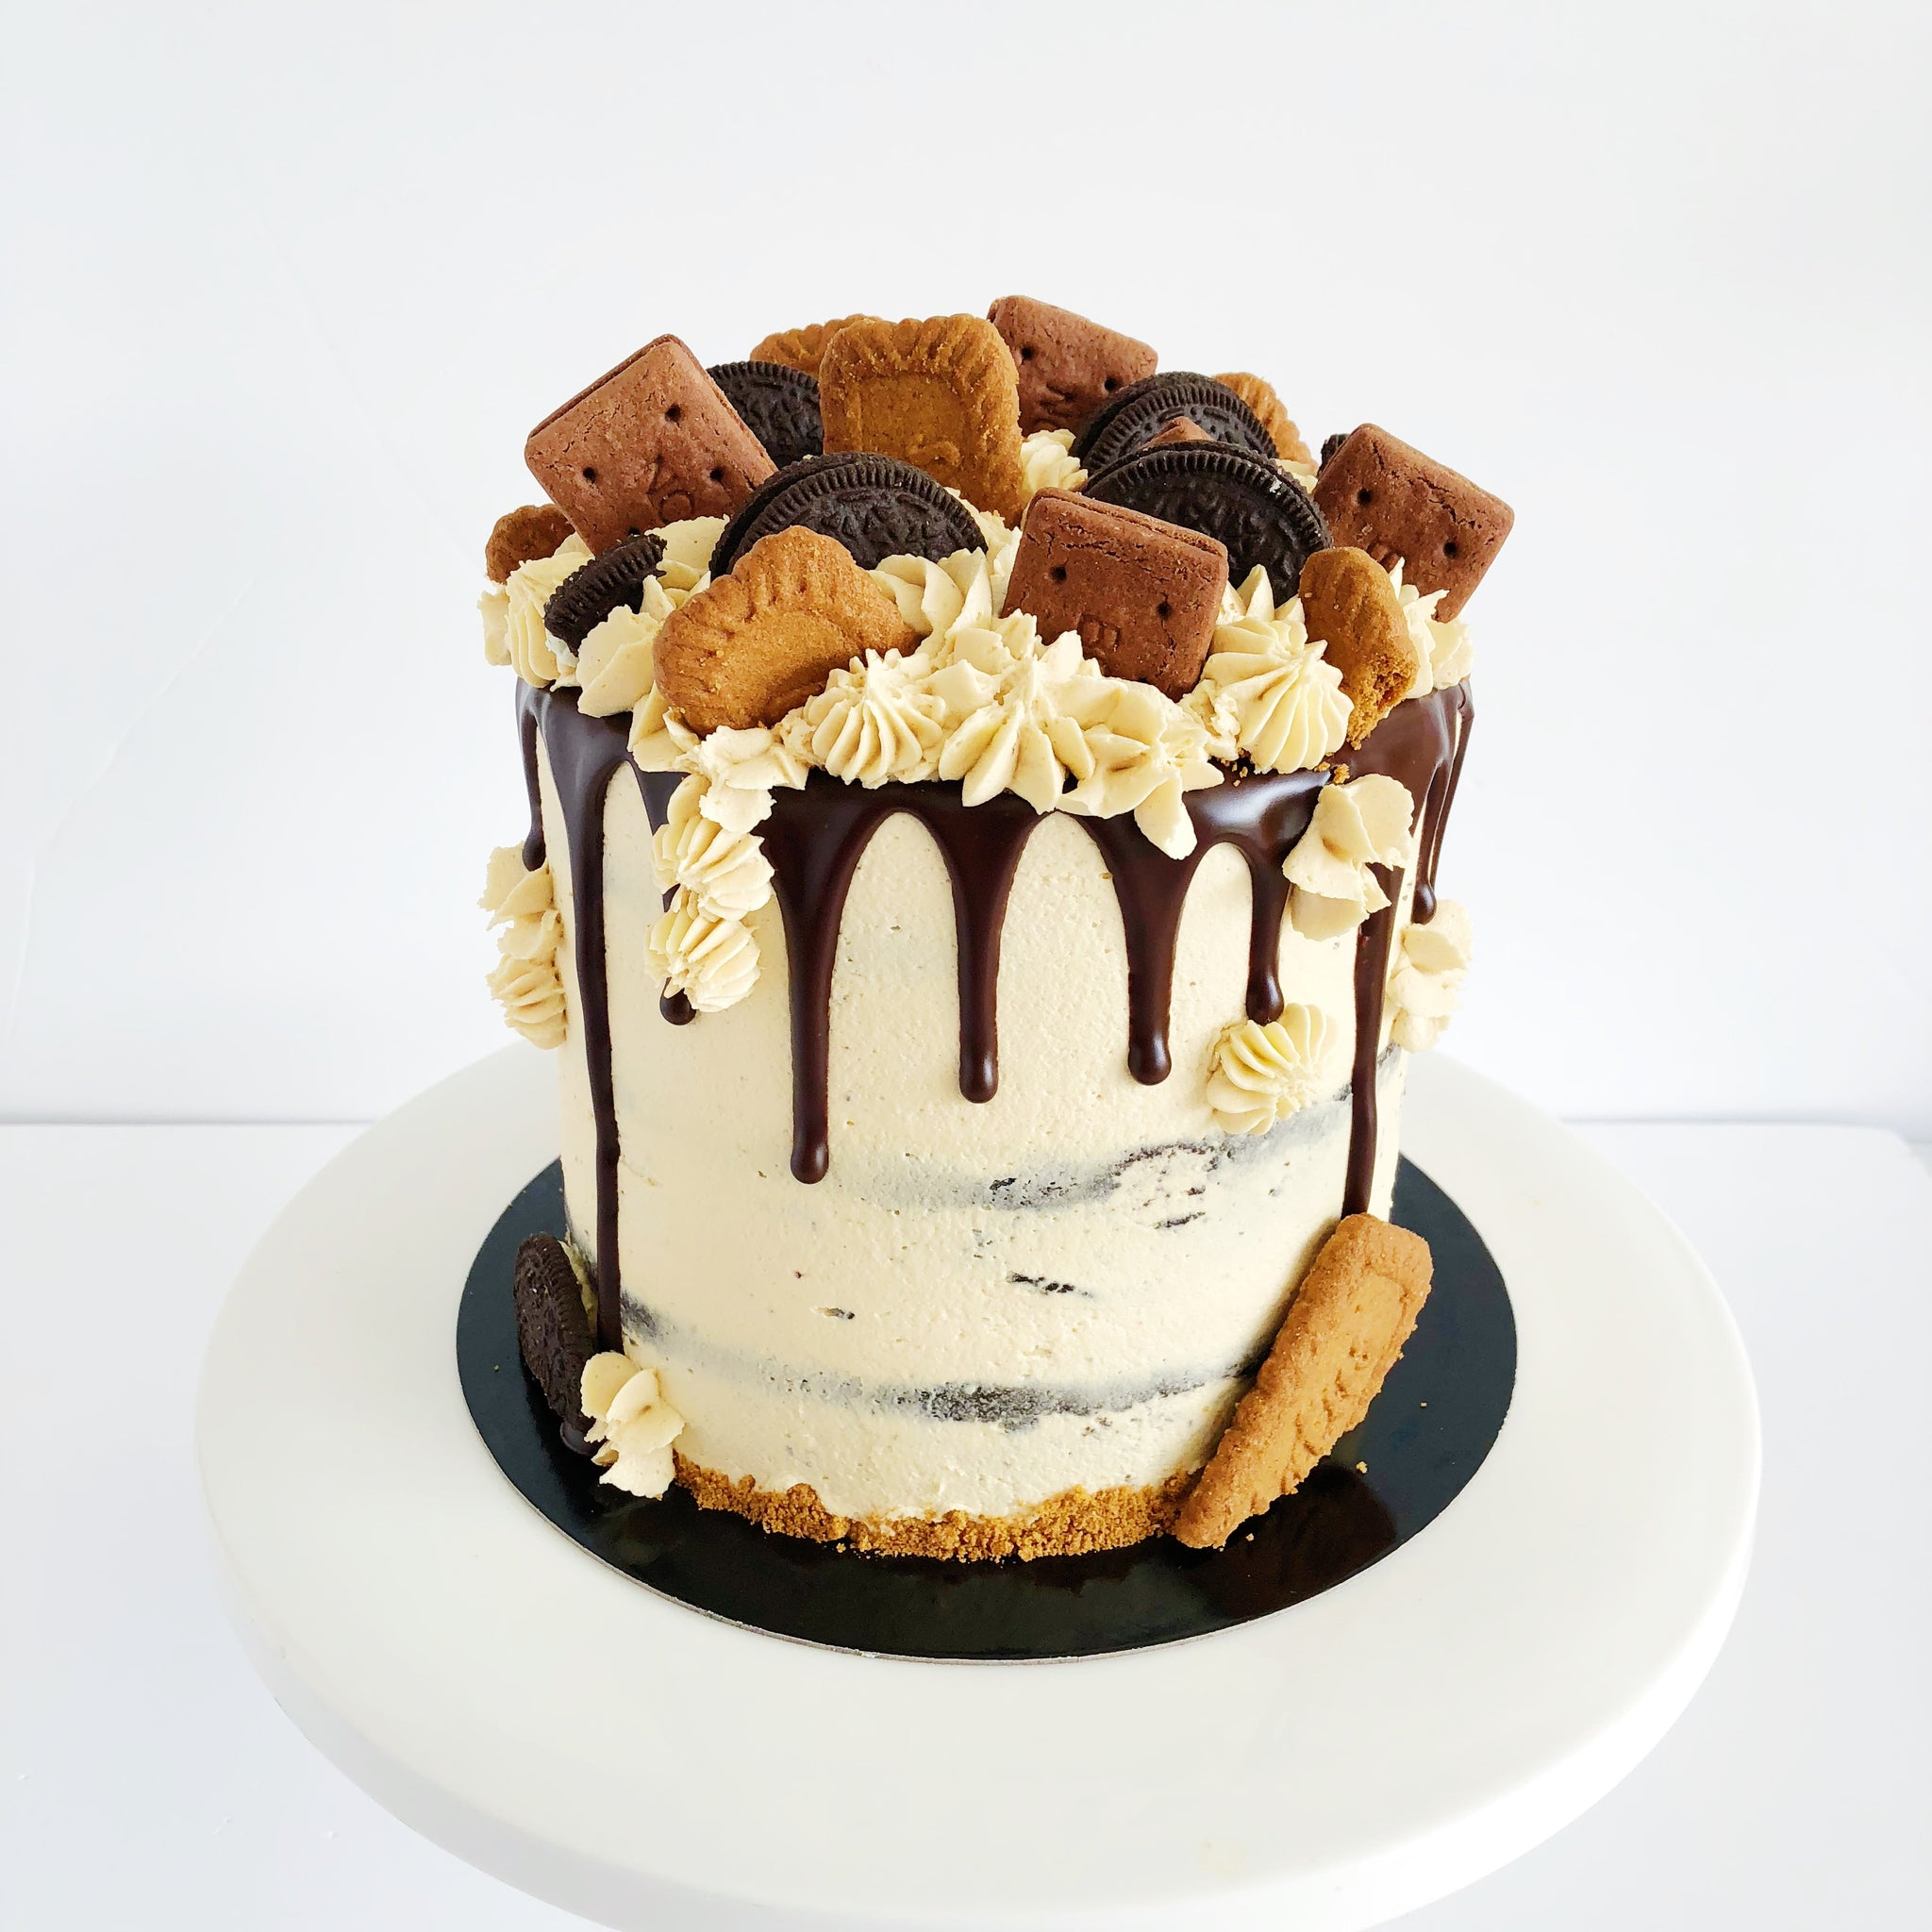 Best Vegan Cakes London - Peanut Butter